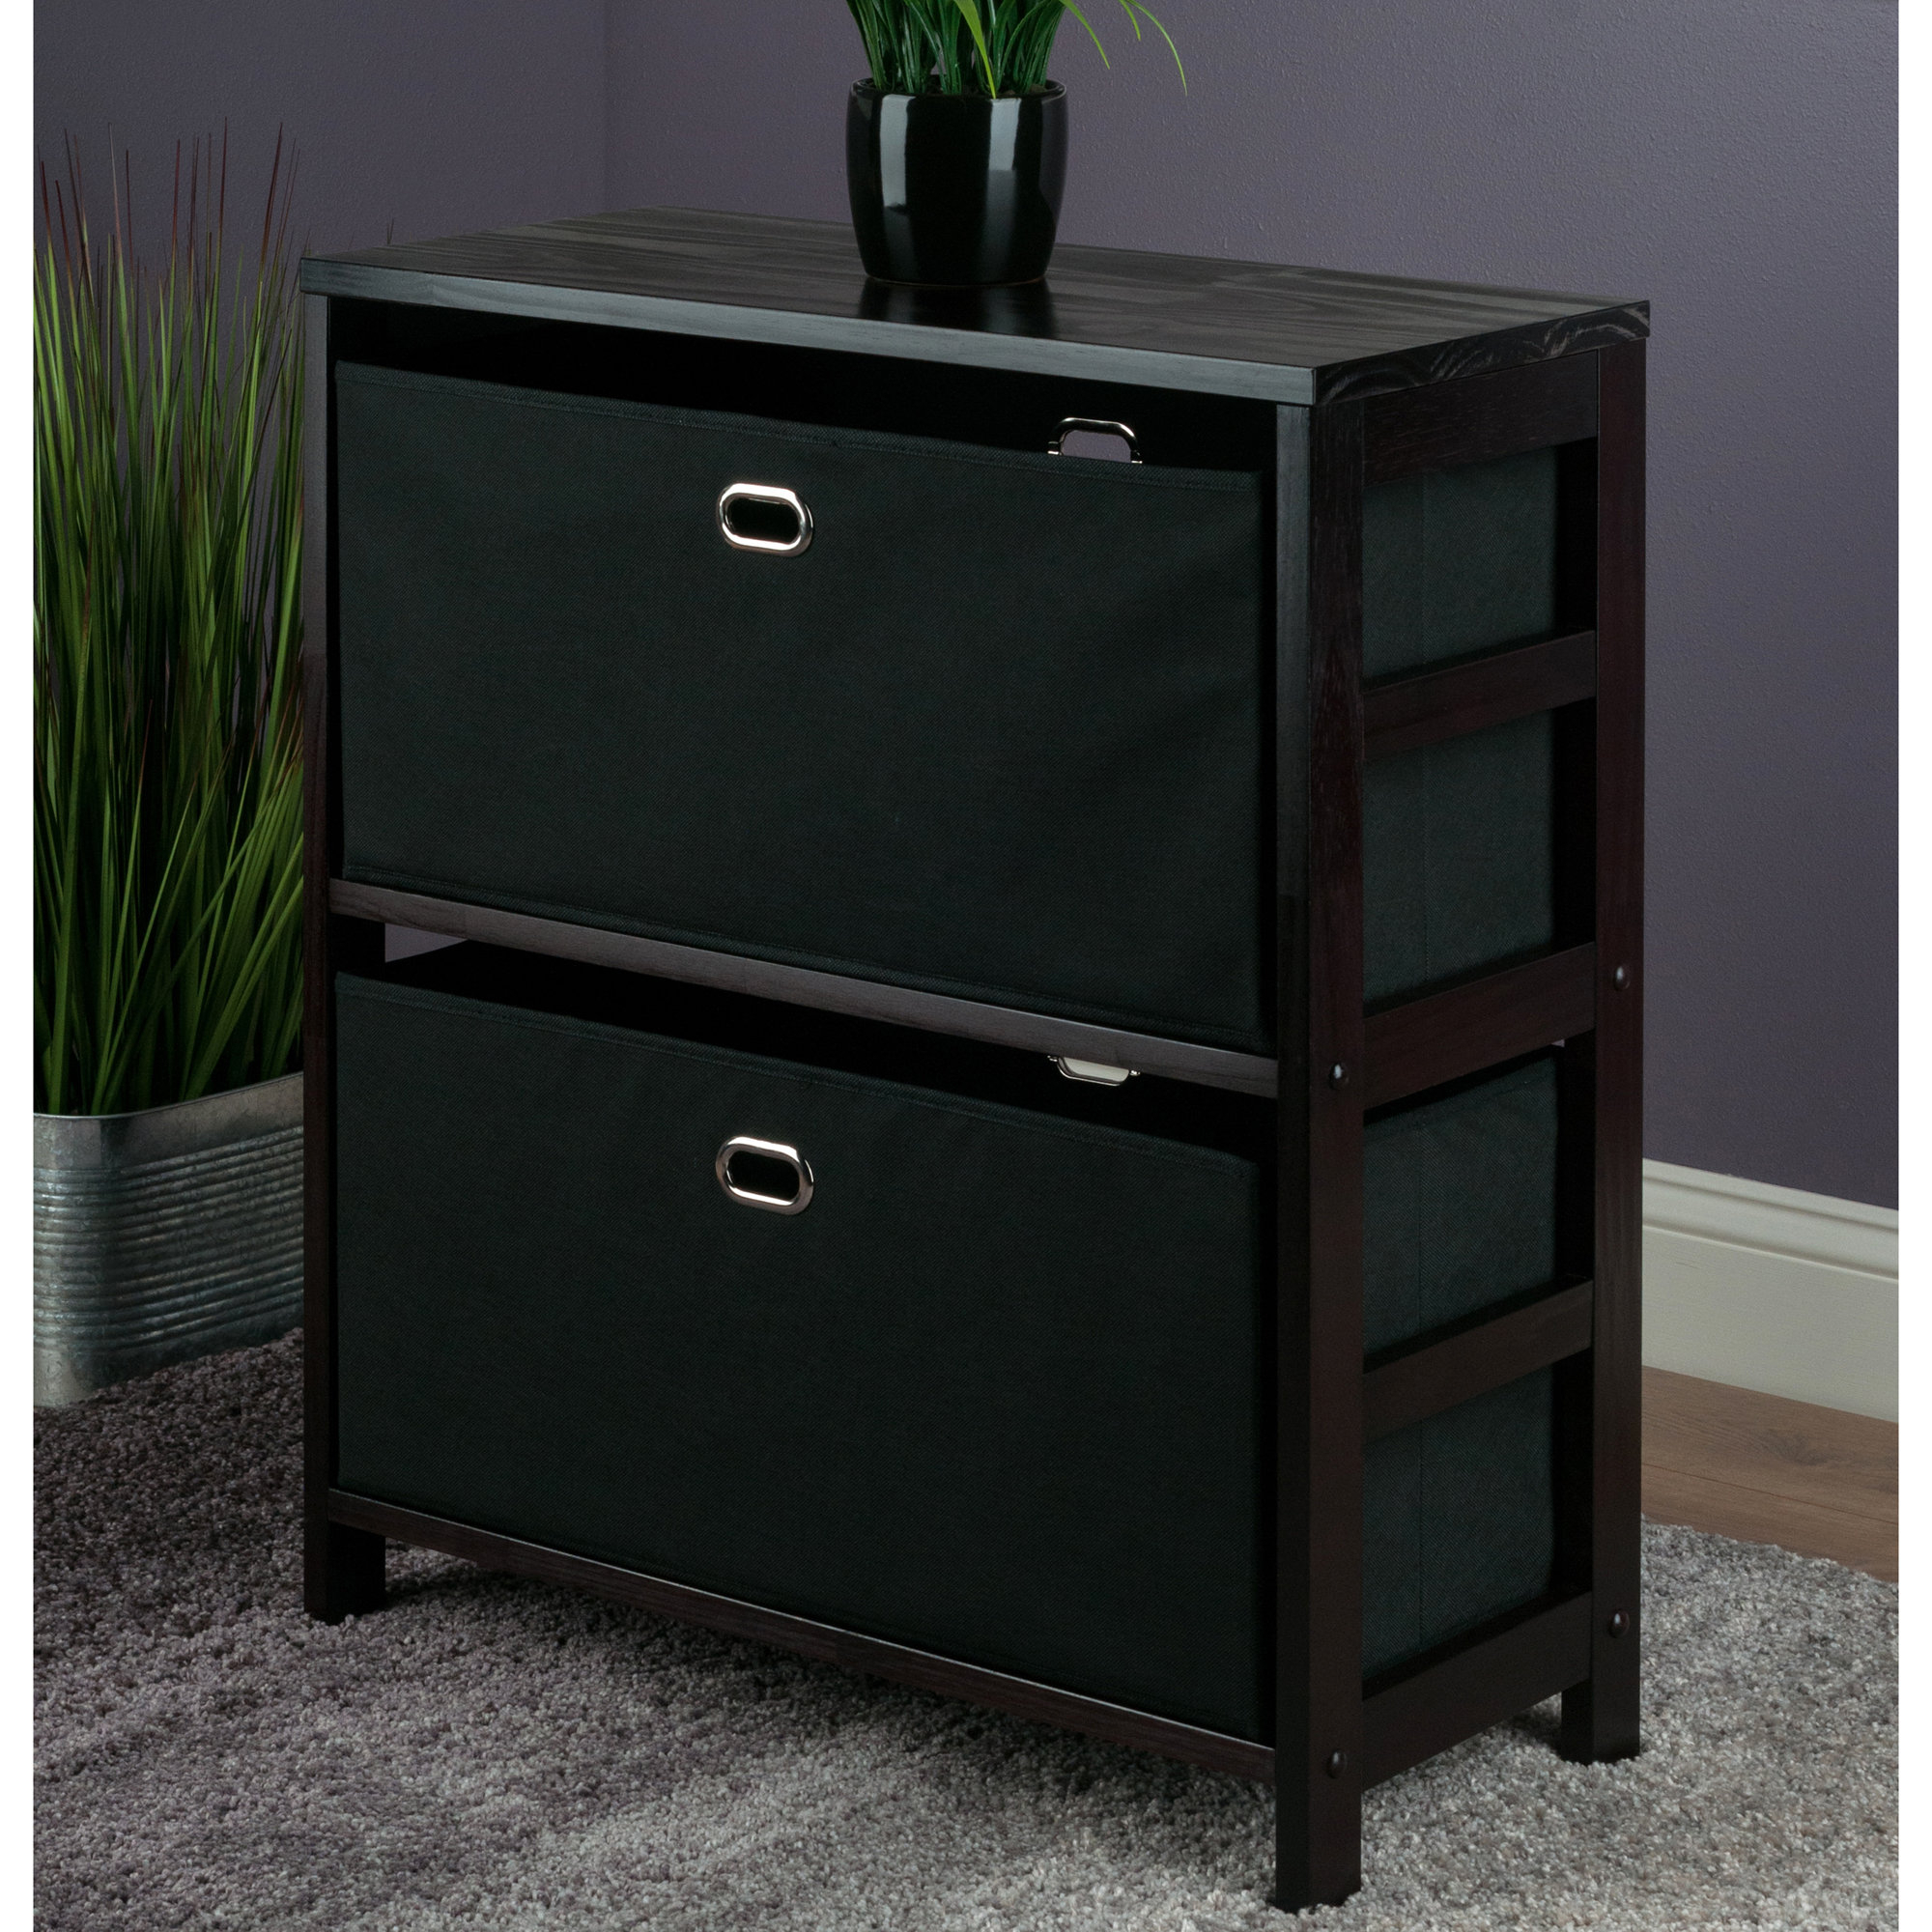 Most Recently Released Tinoco Storage Shelf Standard Bookcases In Tinoco Storage Shelf Standard Bookcase (View 2 of 20)